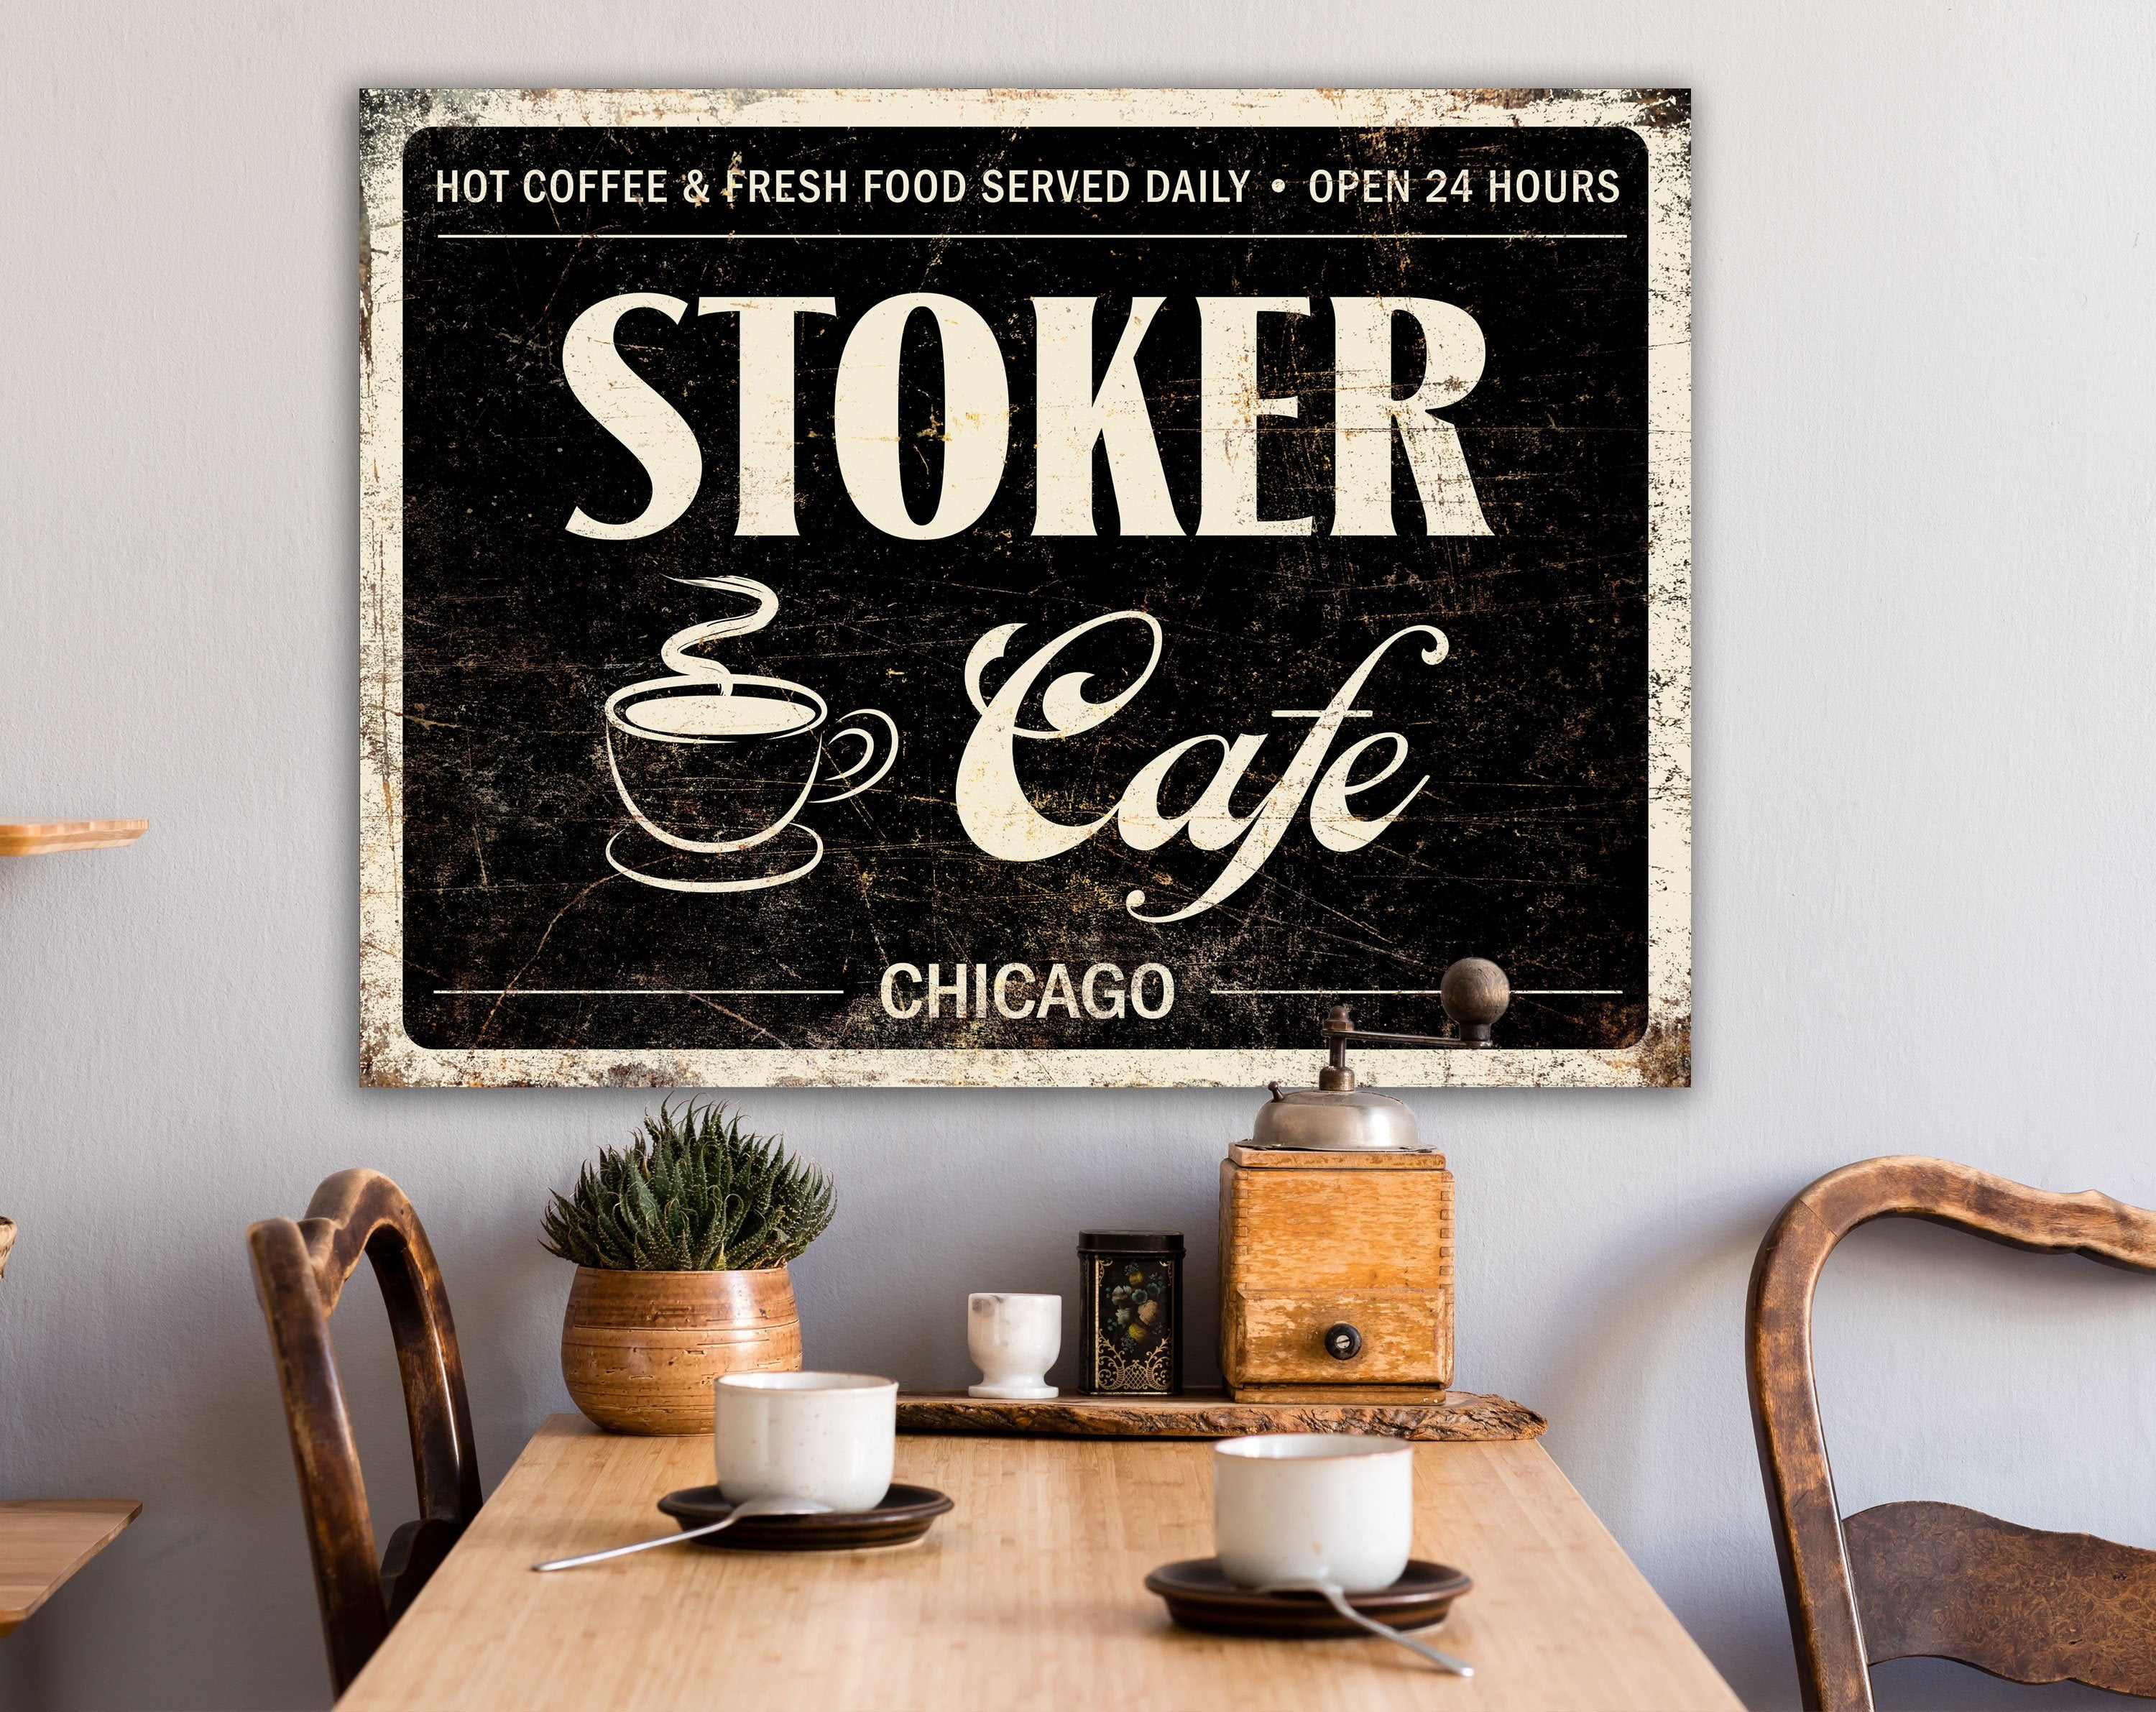 Rustic Kitchen Wall Decor, Retro Coffee Sign, Personalized Vintage Cafe  Faux Metal Canvas Art, Coffee Cup Wall Decor, Restaurant Style Sign Pertaining To Personalized Distressed Vintage Look Kitchen Metal Sign Wall Decor (Gallery 6 of 30)